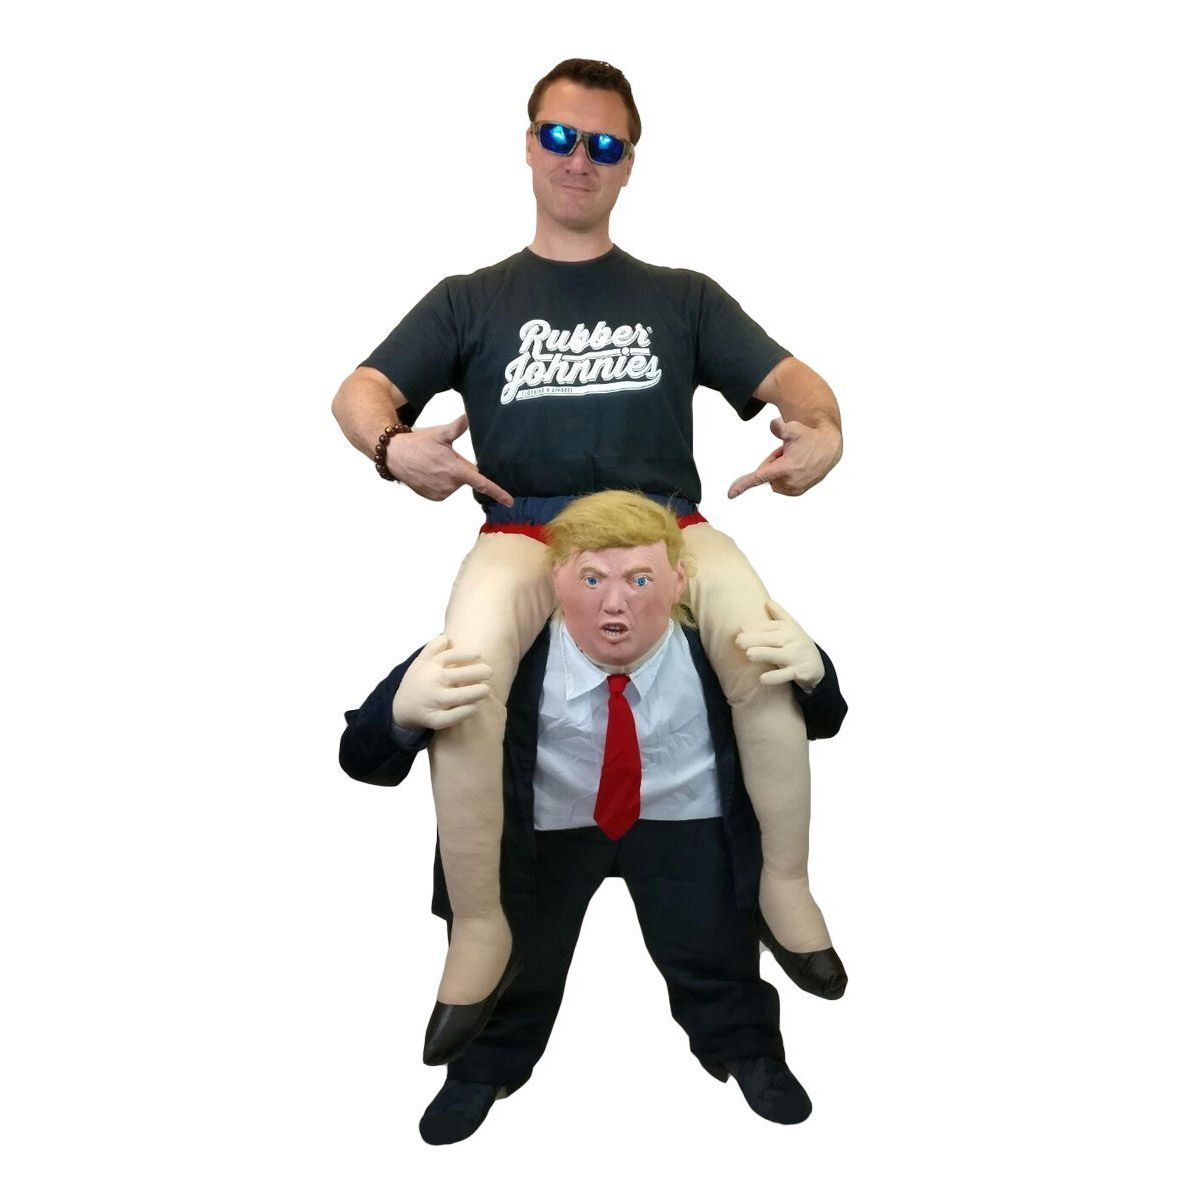 Top 5 Best Selling Donald Trump Halloween Costumes and Masks #Best #BestCostume  sc 1 st  Pinterest & Top 5 Best Selling Donald Trump Halloween Costumes and Masks #Best ...